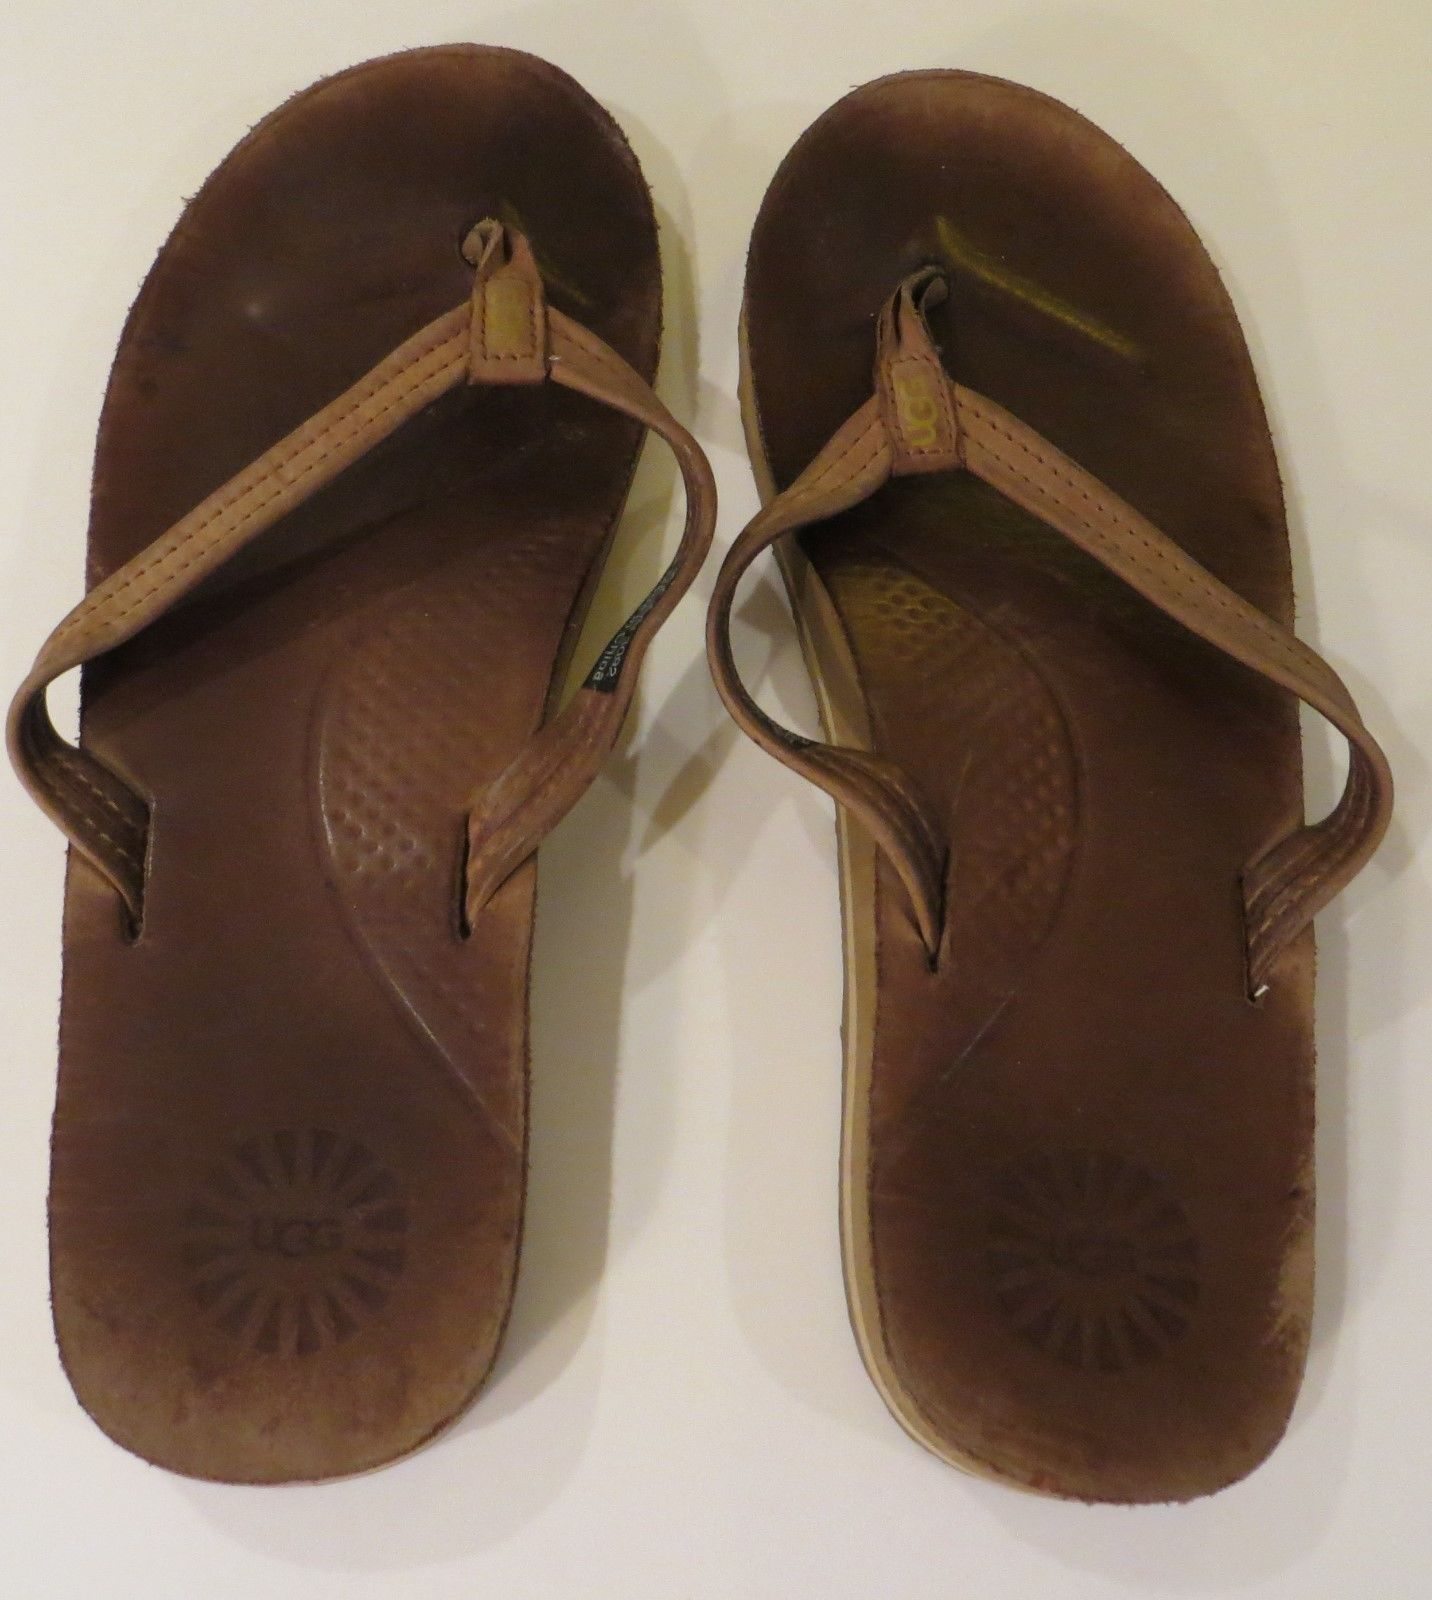 ugg kayla flip flop thong sandals brown leather us size 8 3092 sandals flip flops. Black Bedroom Furniture Sets. Home Design Ideas